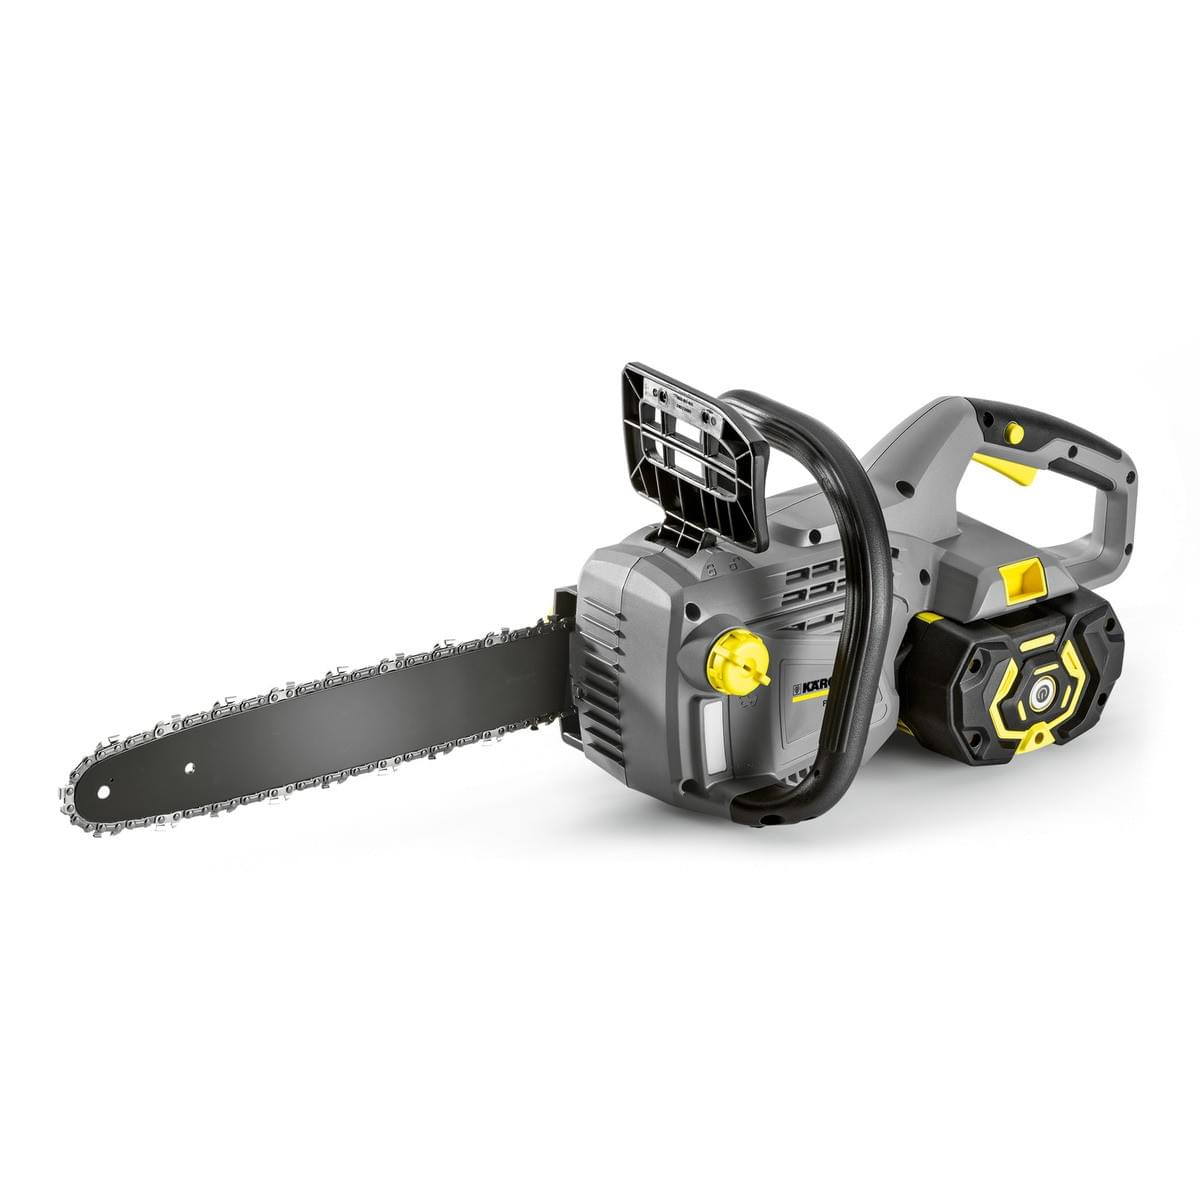 Цепная пила Karcher CS 330 Bp